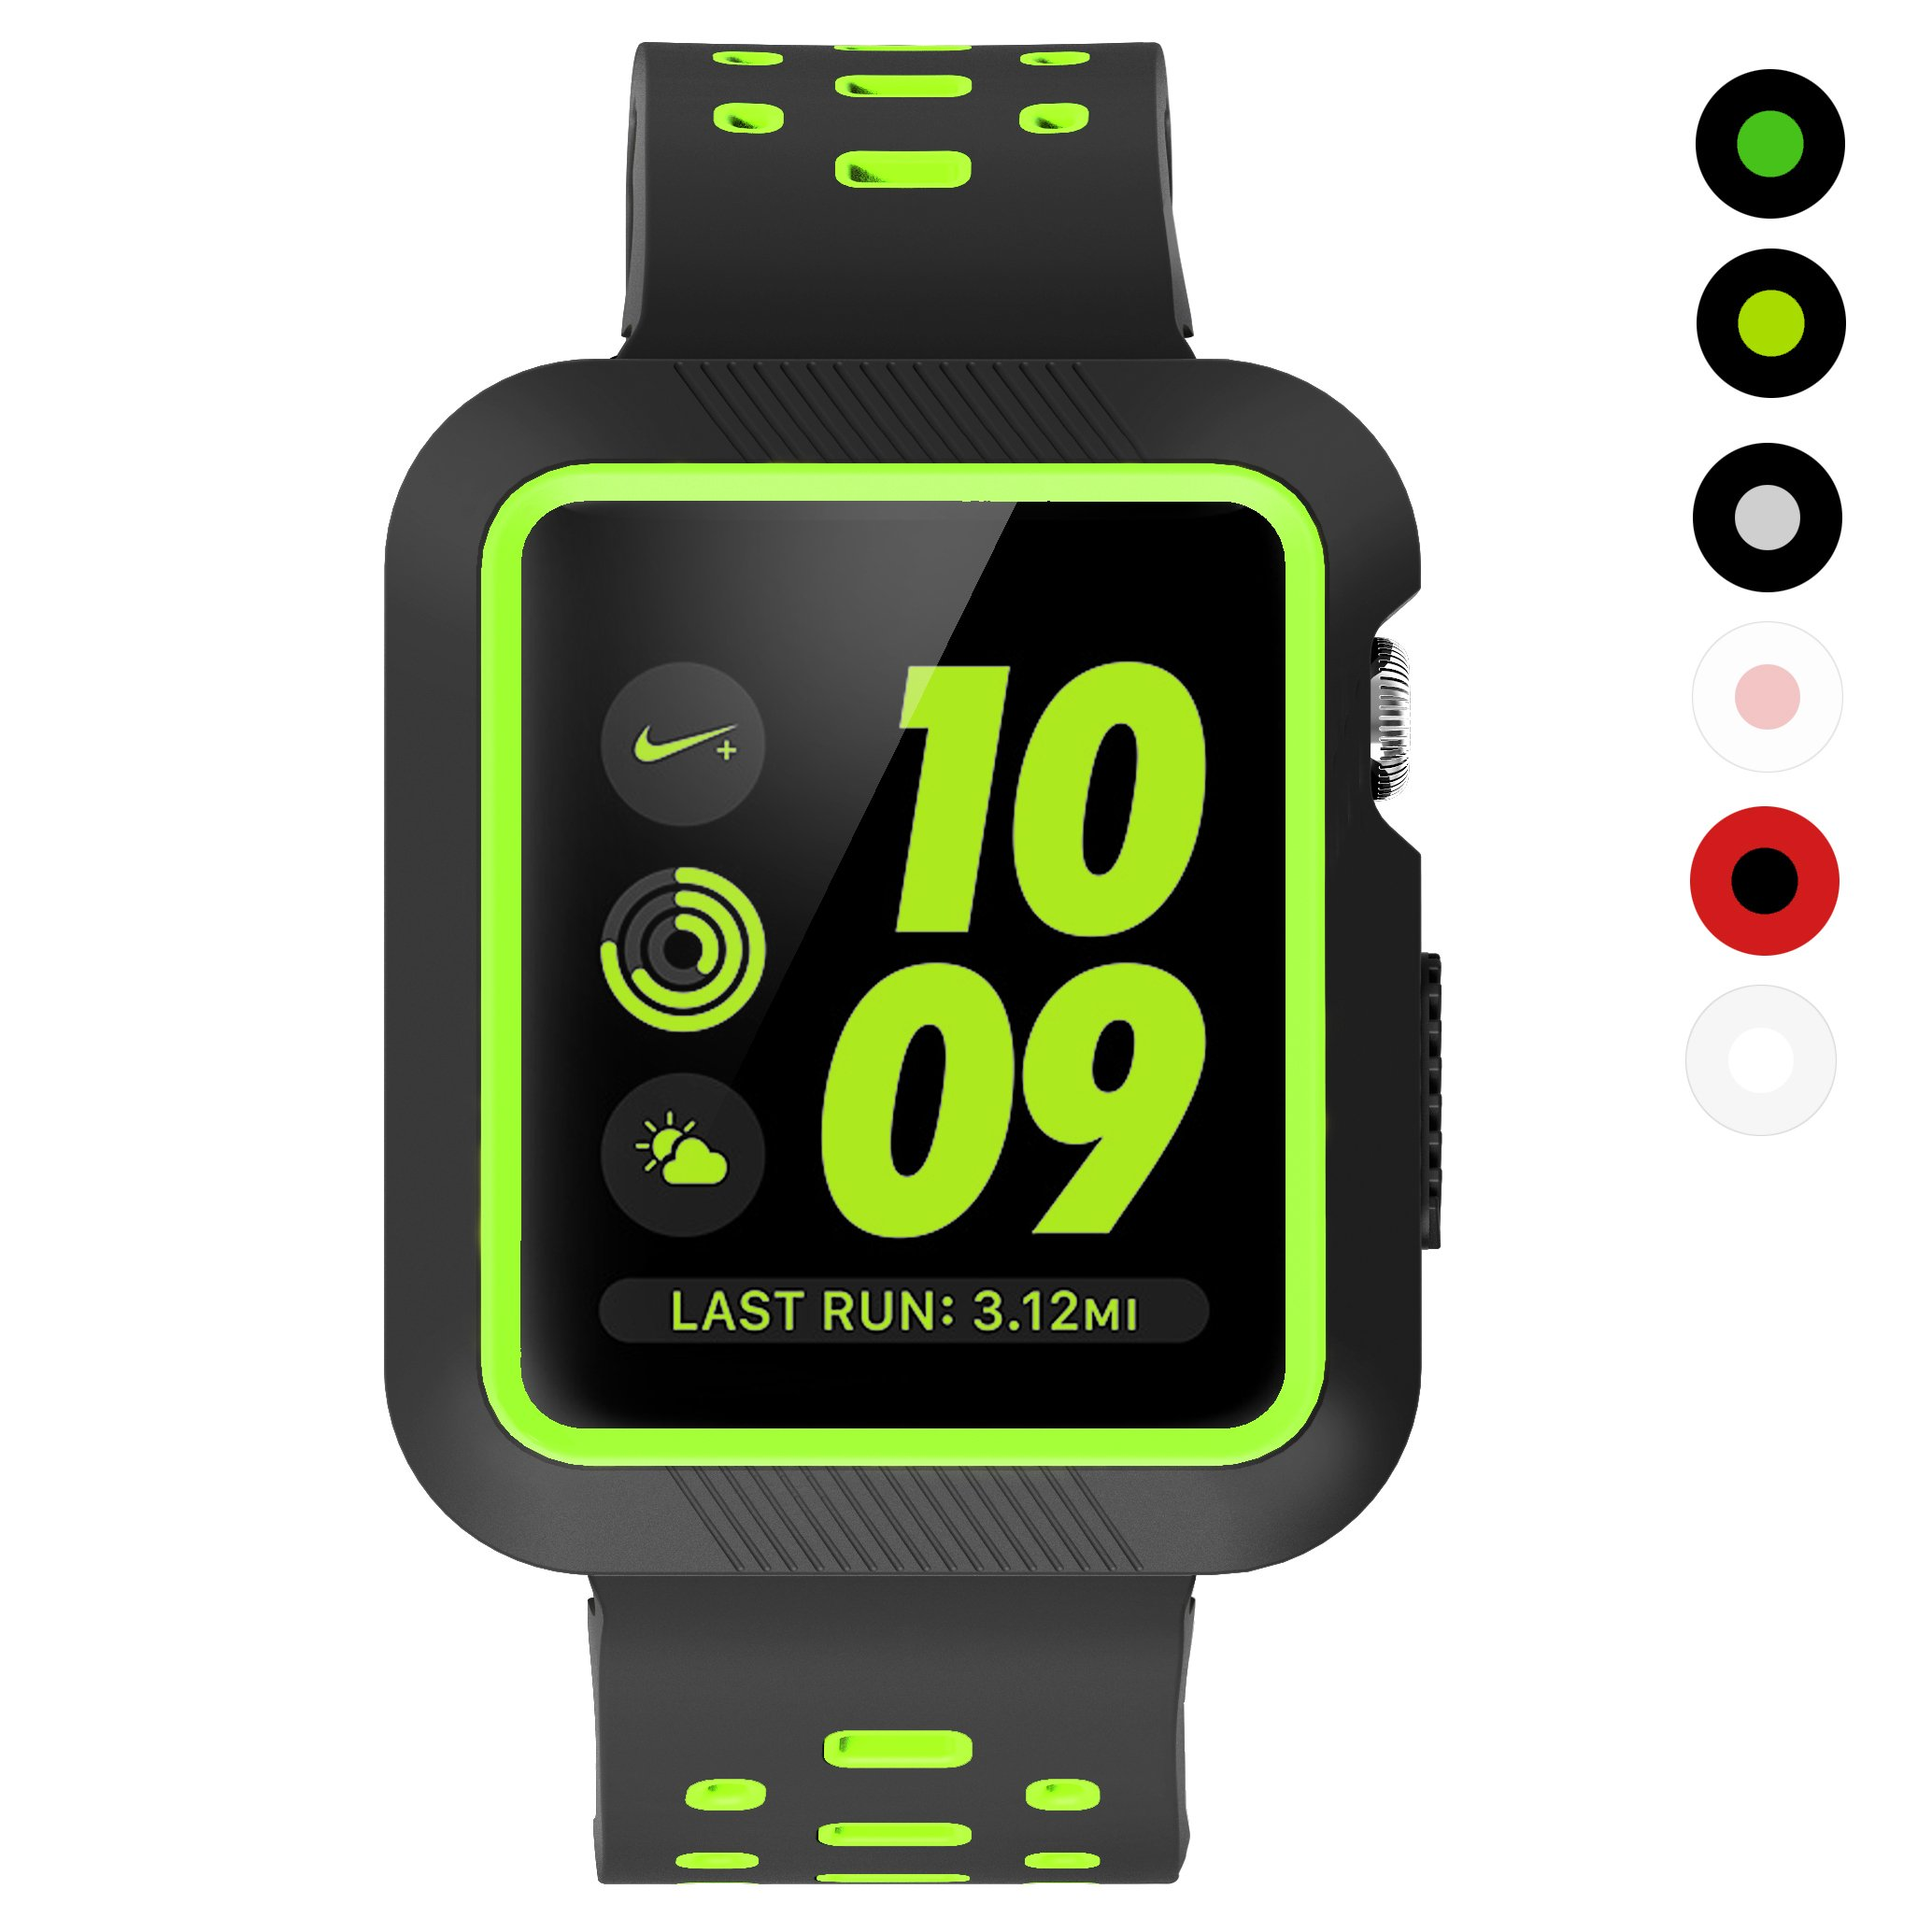 Galleon Kartice For Apple Watch Series 3 Bandshock Proof And 2 38mm Black Shatter Resistant Protective Case With Soft Silicone Sport Bracelet Wristband All